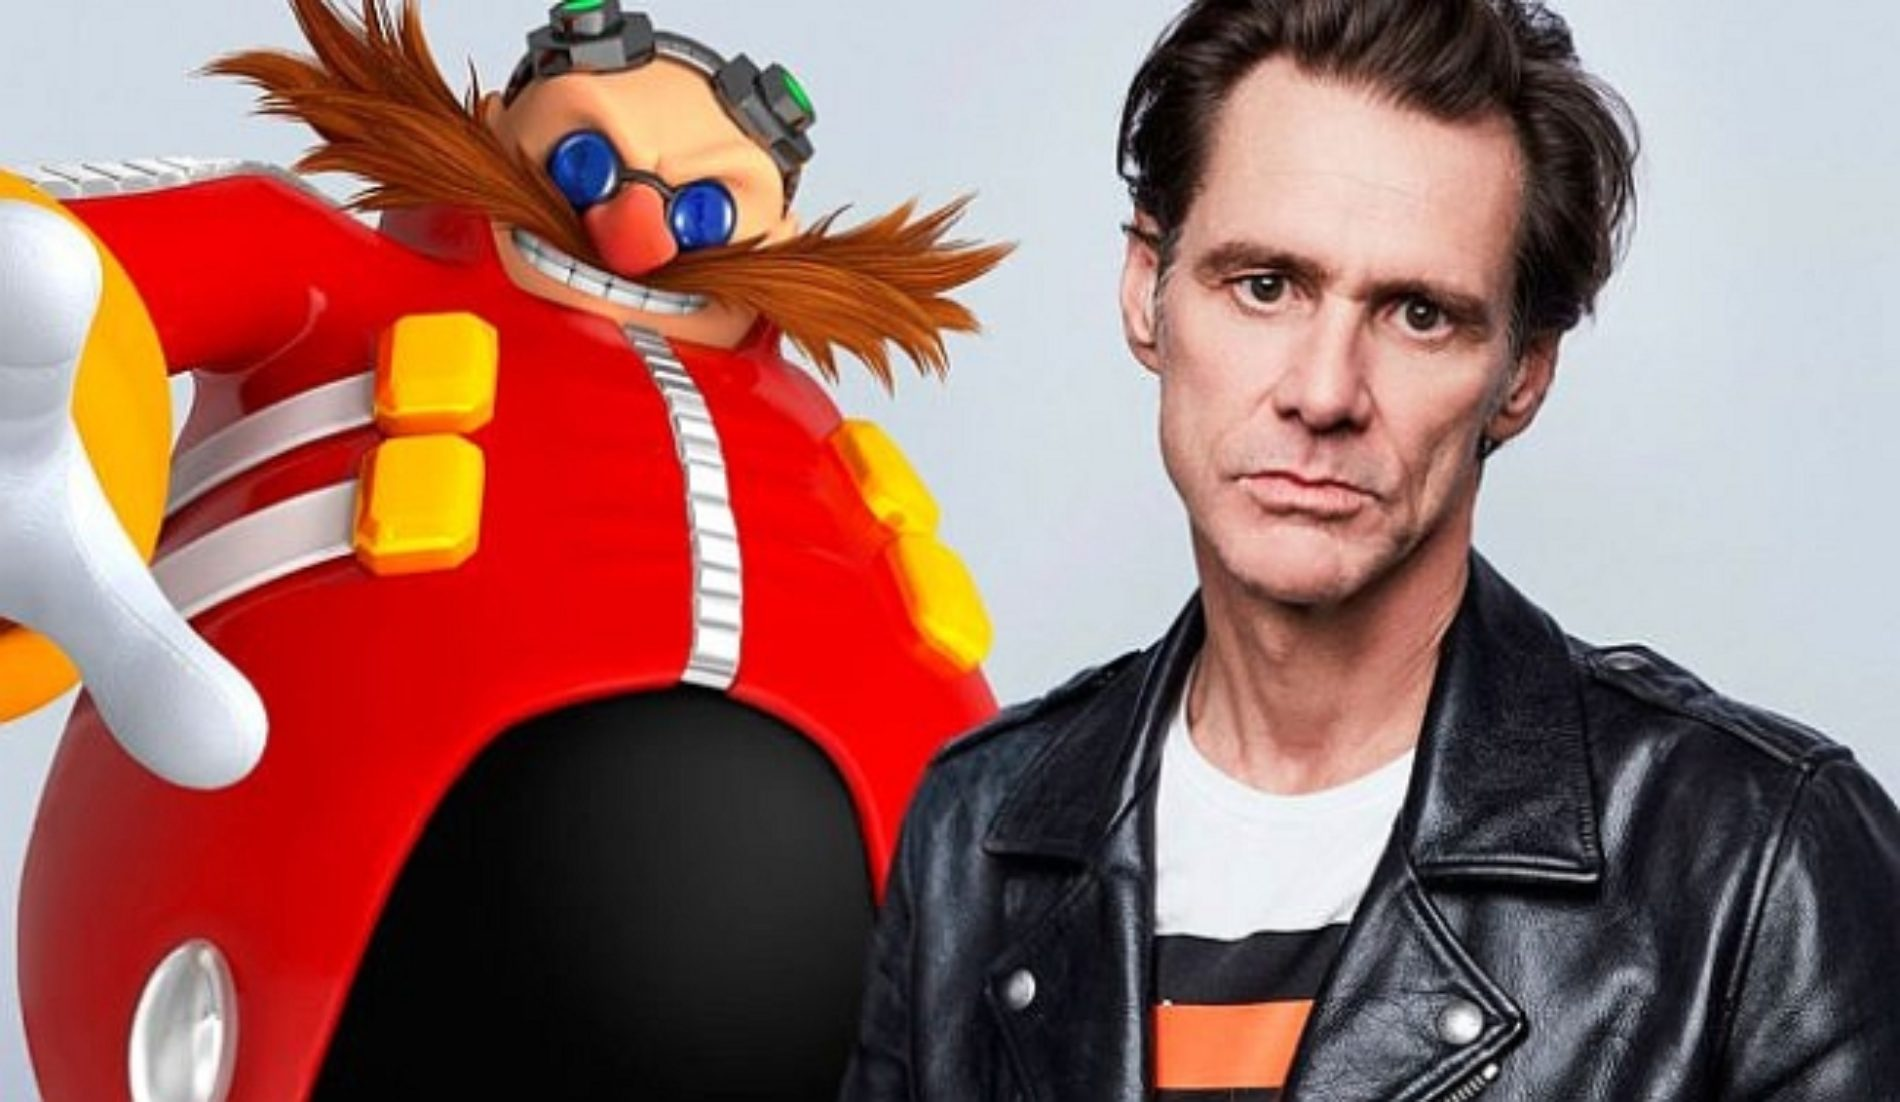 Volverá al cine Jim Carrey como el villano de 'Sonic the Hedgehog'